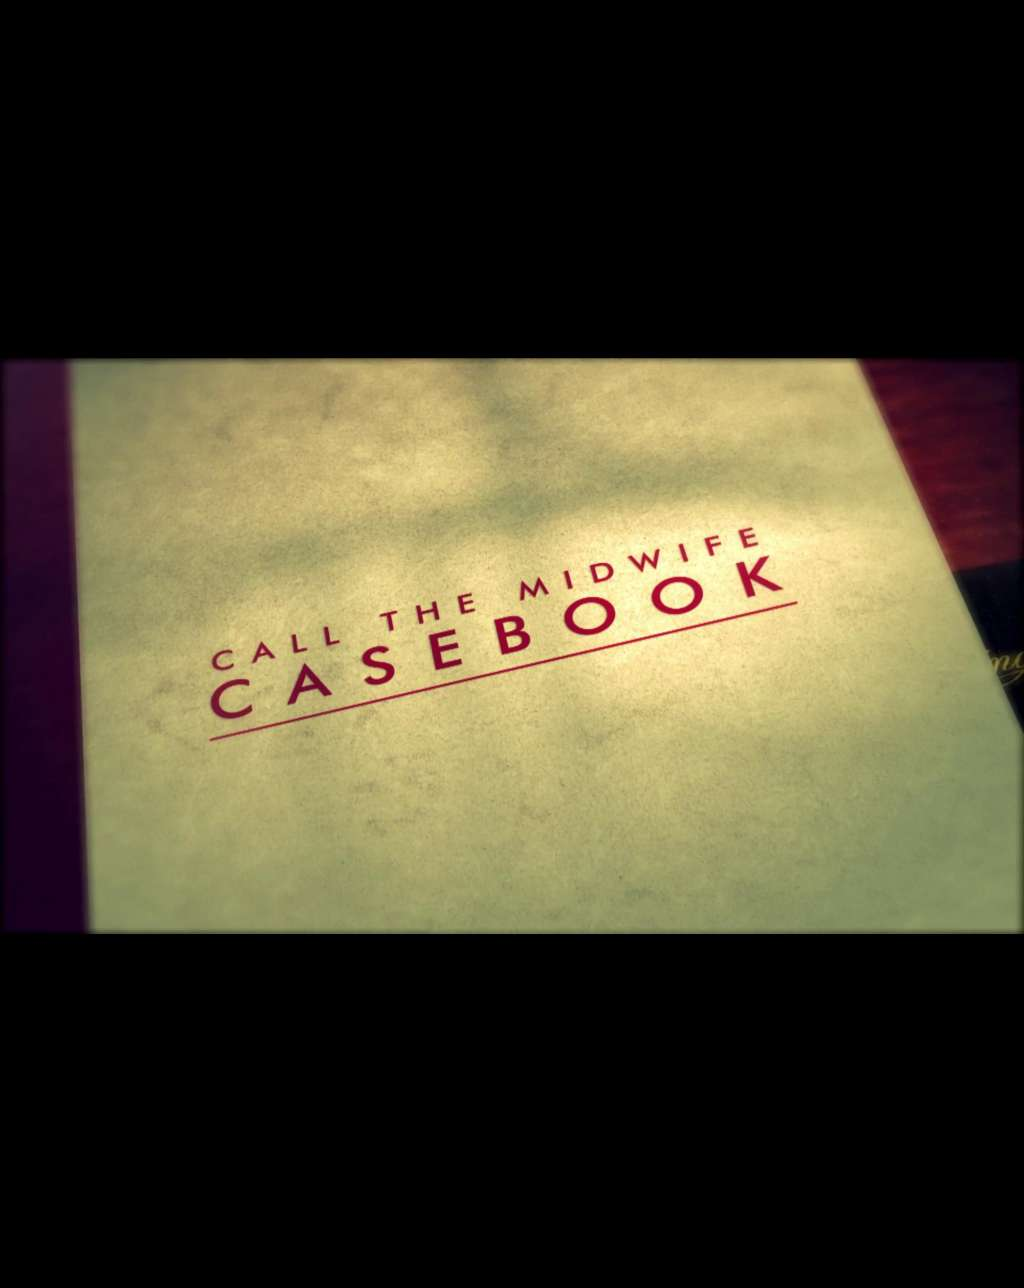 Call the Midwife: The Casebook kapak